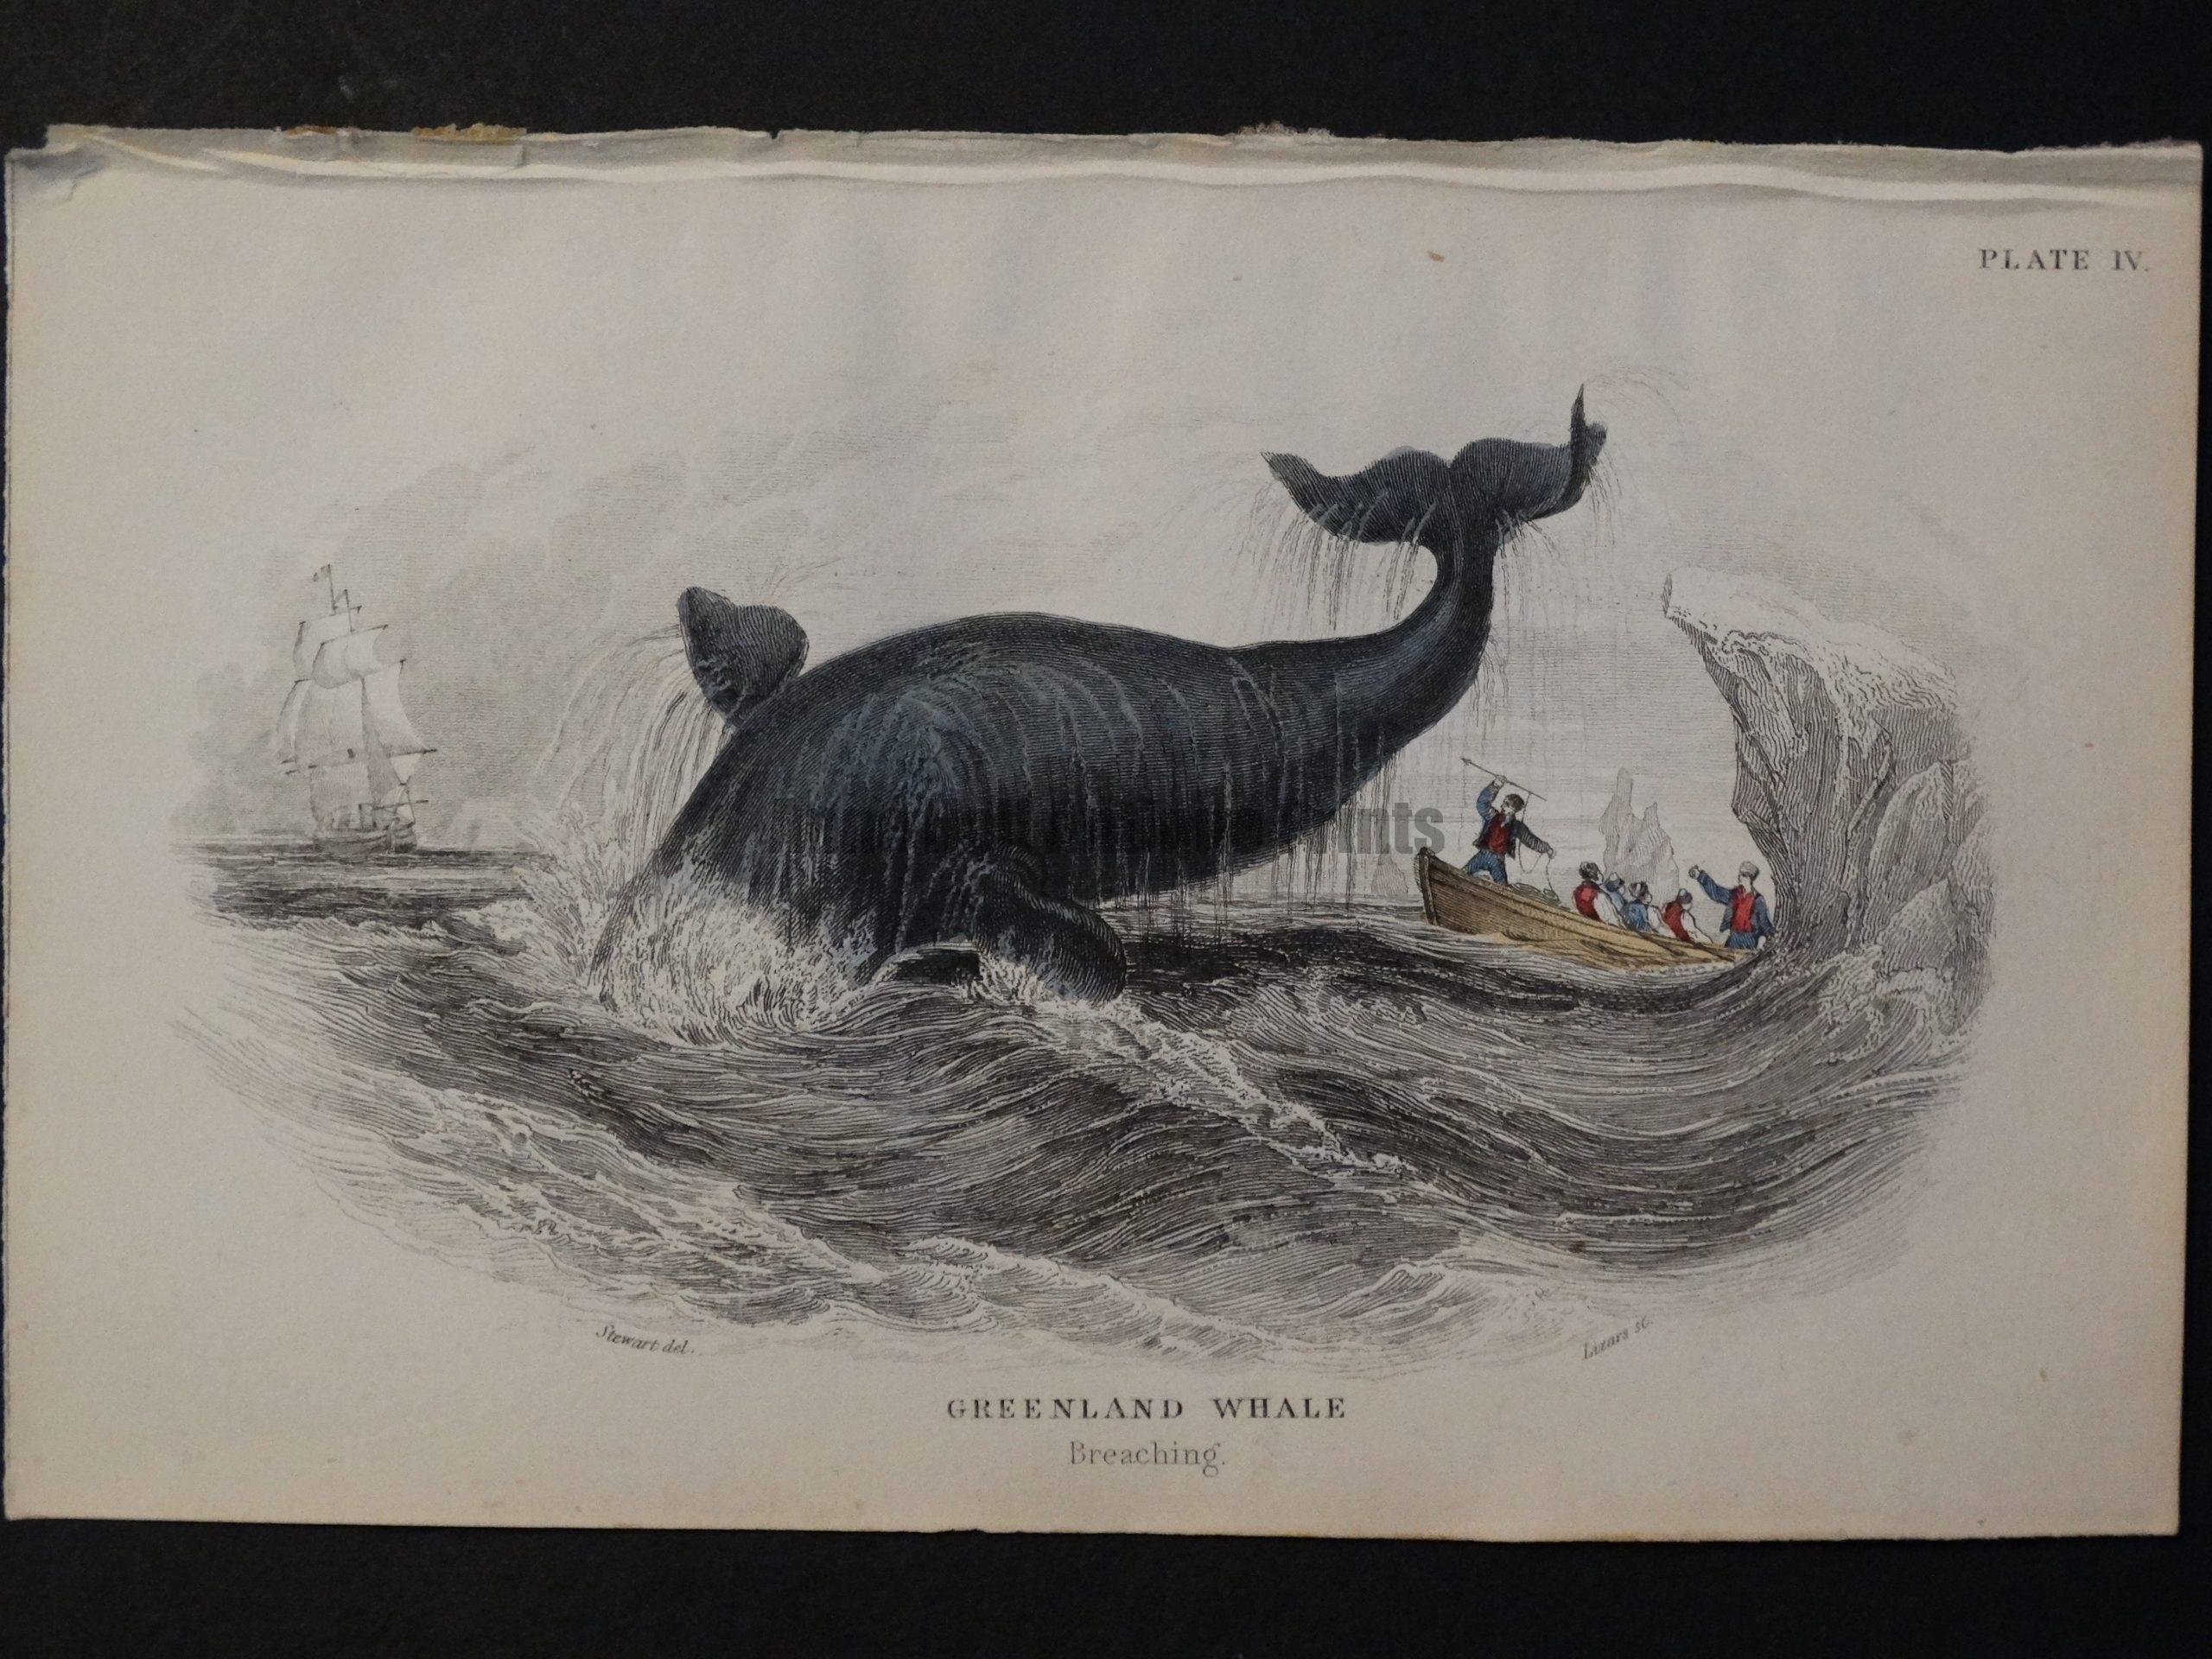 Lizar Whales Greenland Whale Pl 4 (2)